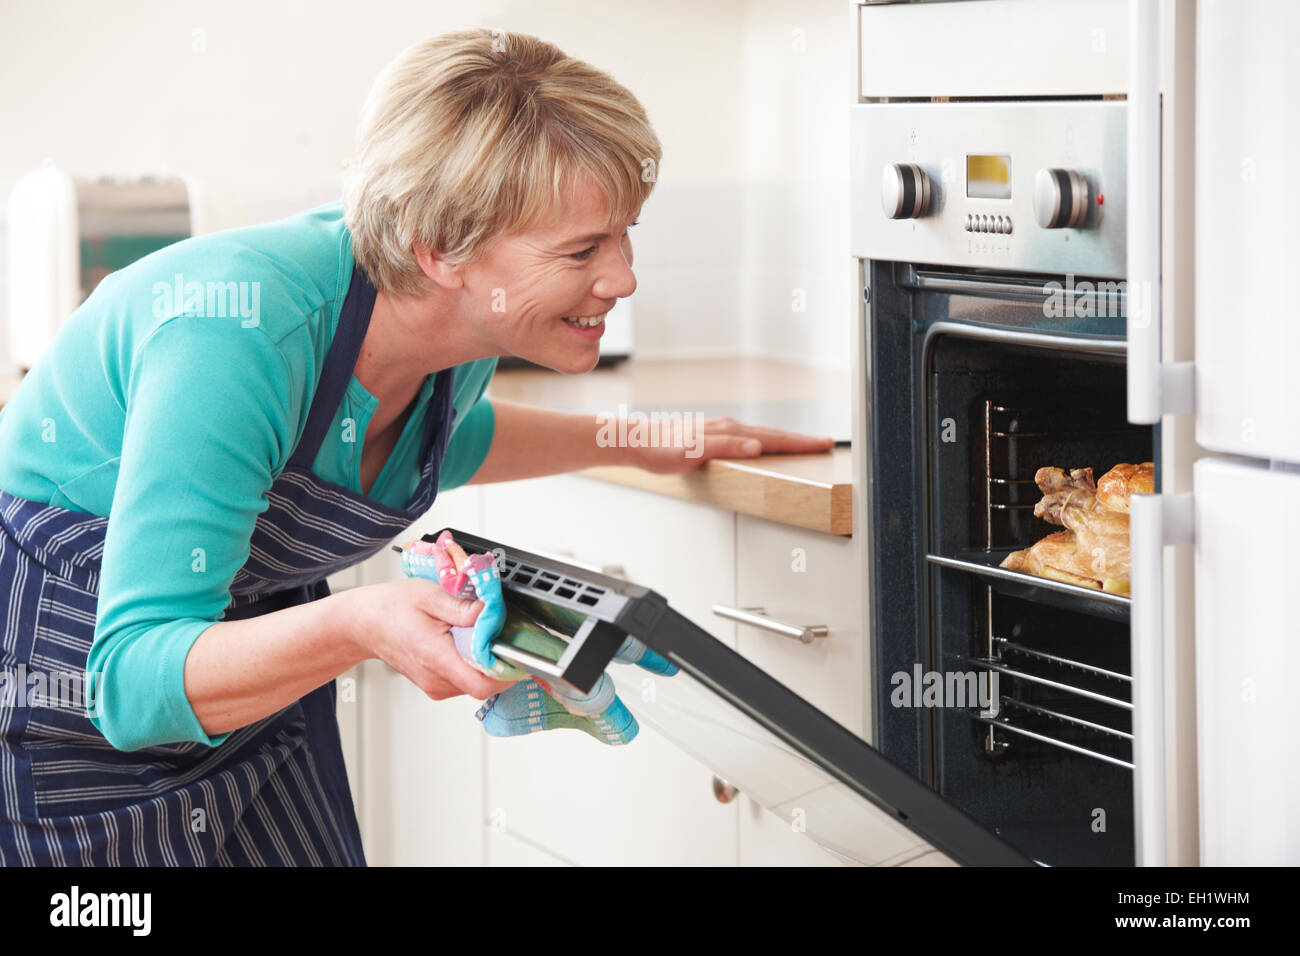 Woman Looking At Chicken Roasting In Oven - Stock Image